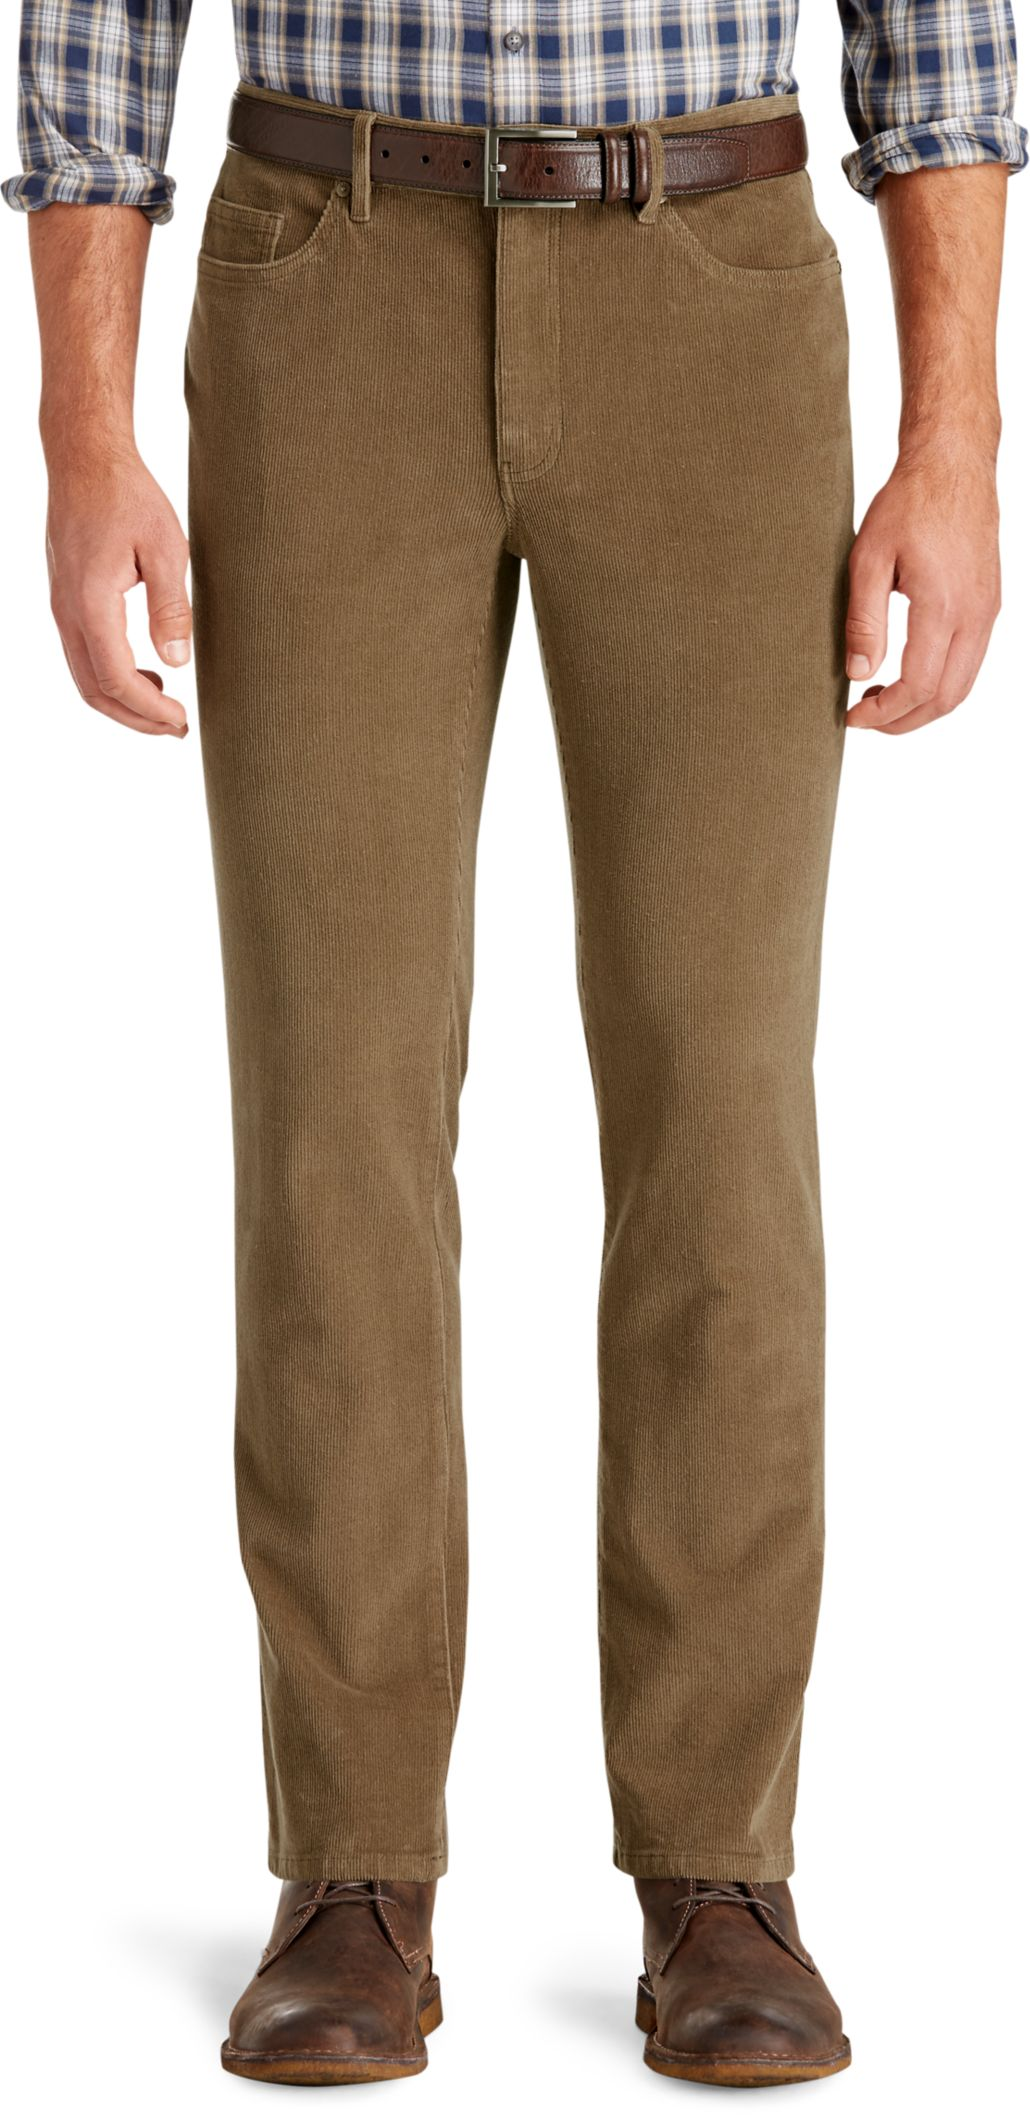 Can Pleated Pants Be Tailored To Flat Front